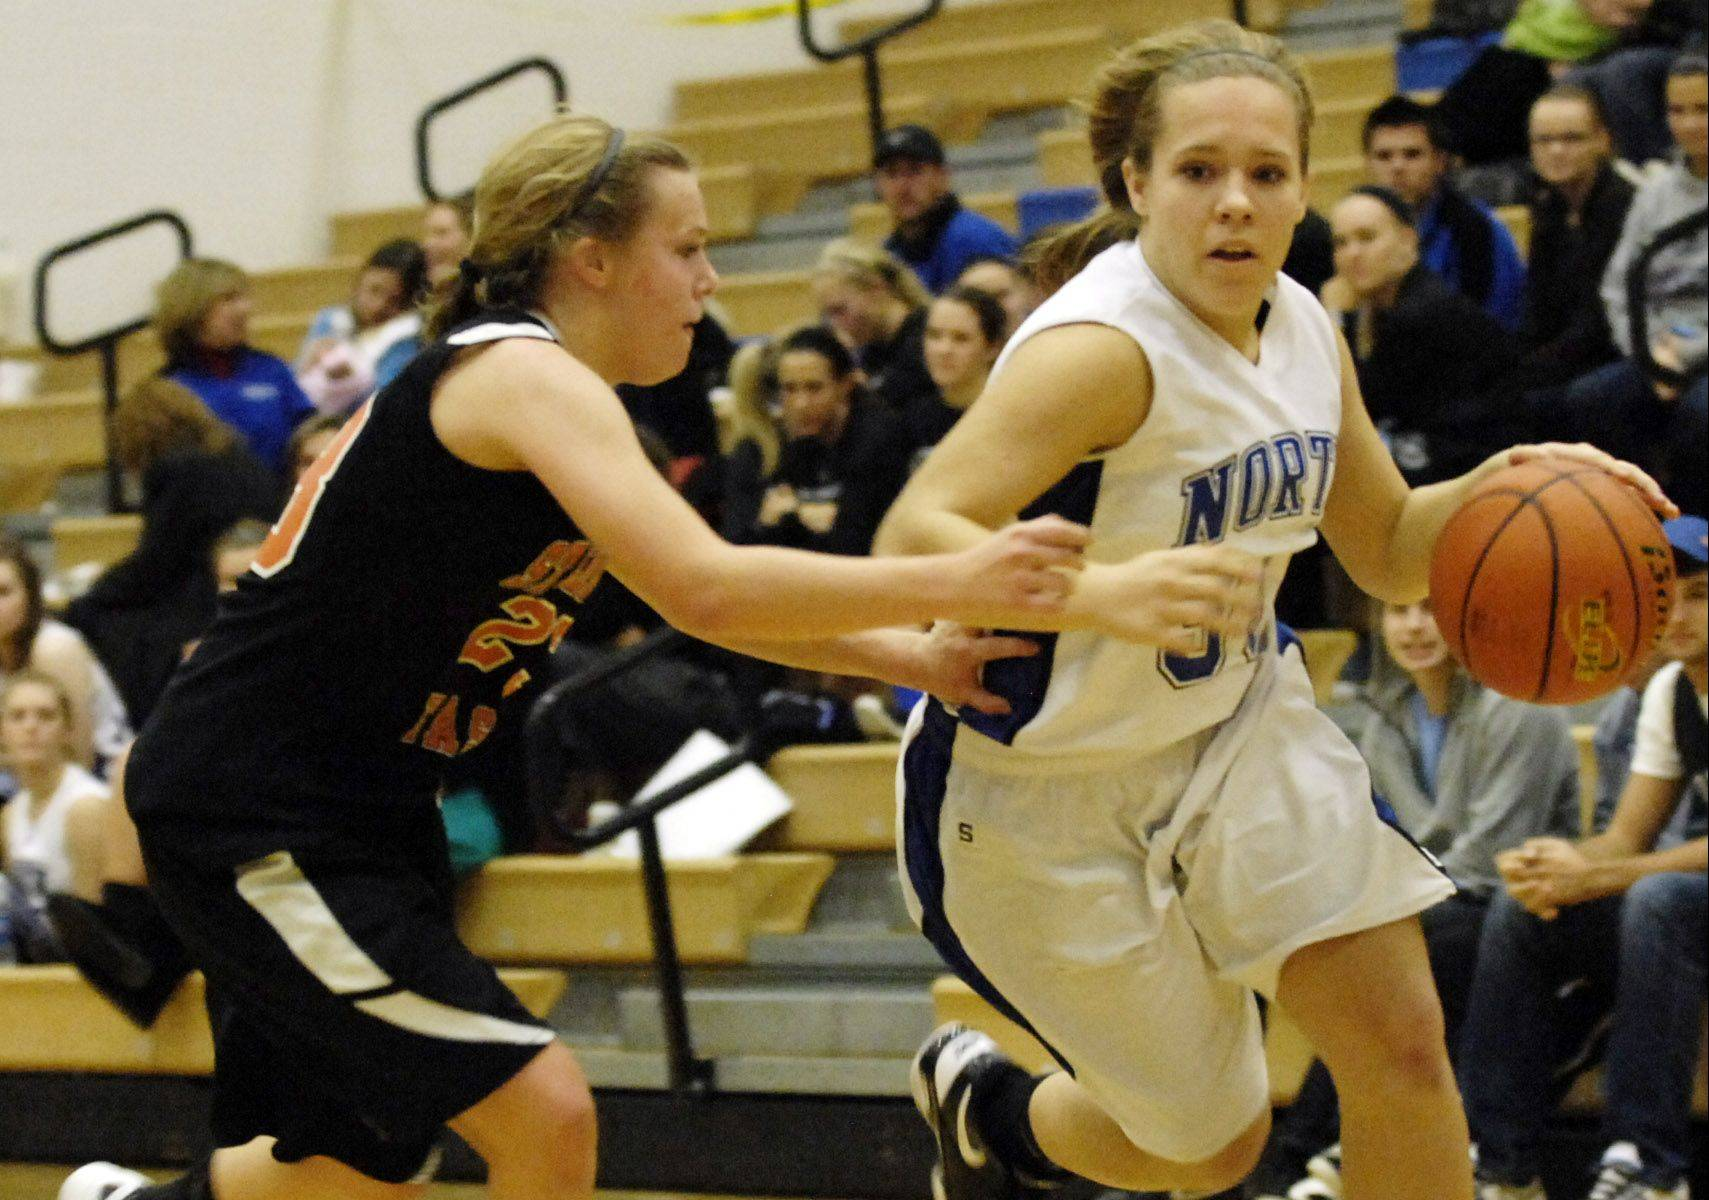 St. Charles North's Ava Tarka is one of the players coach Colleen Backer is counting on to help with ballhandling and pressure defense.